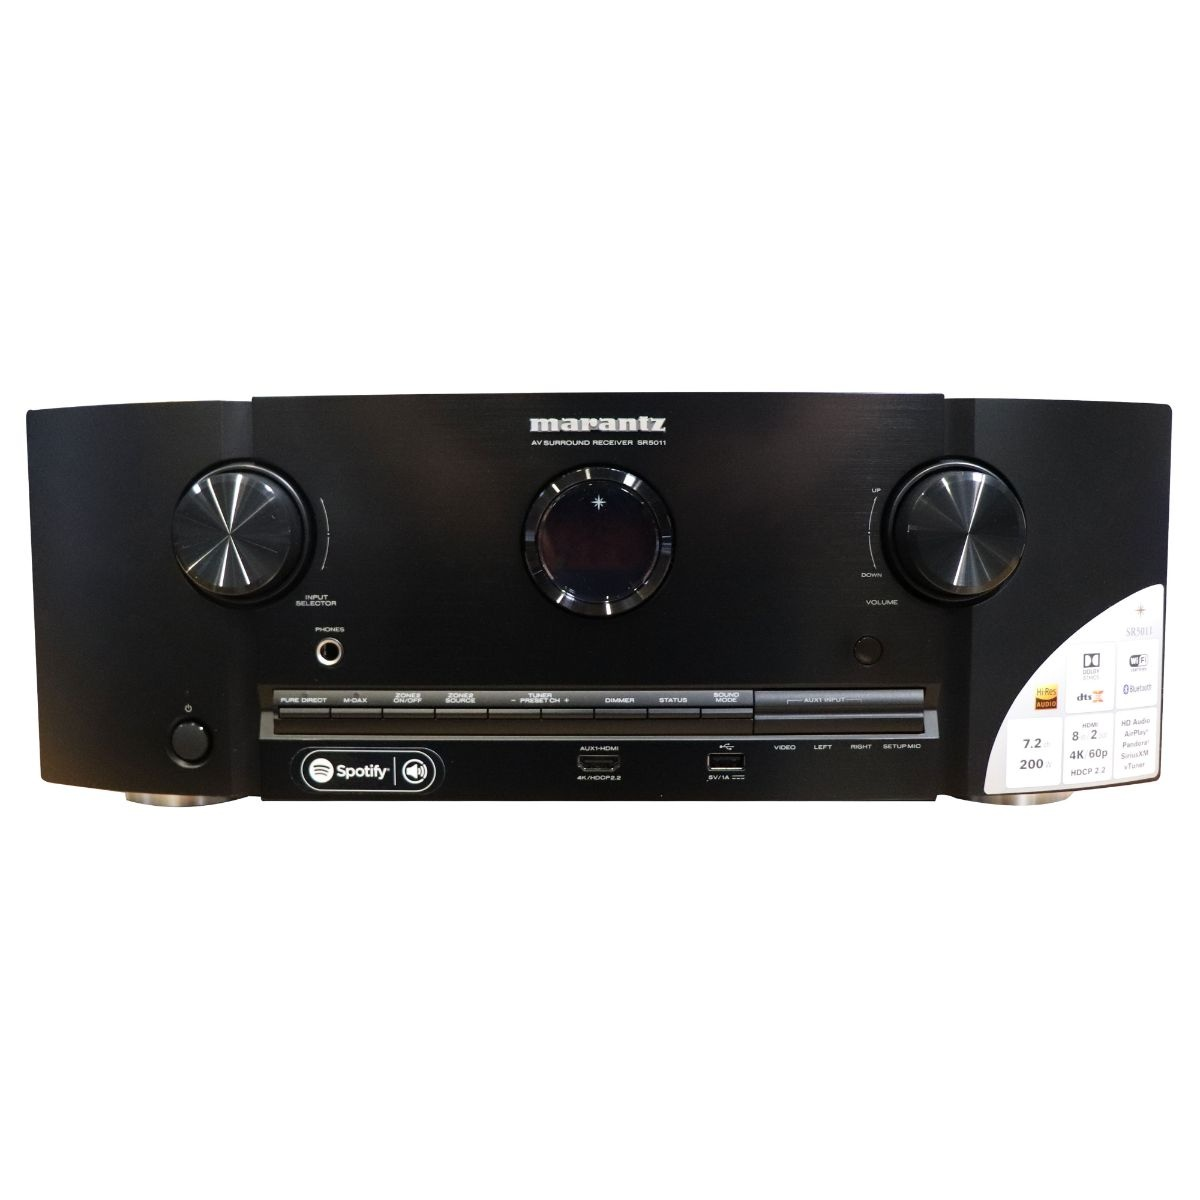 Marantz SR5011 7.2 Channel Network Audio/Video Surround Receiver w/ Bluetooth